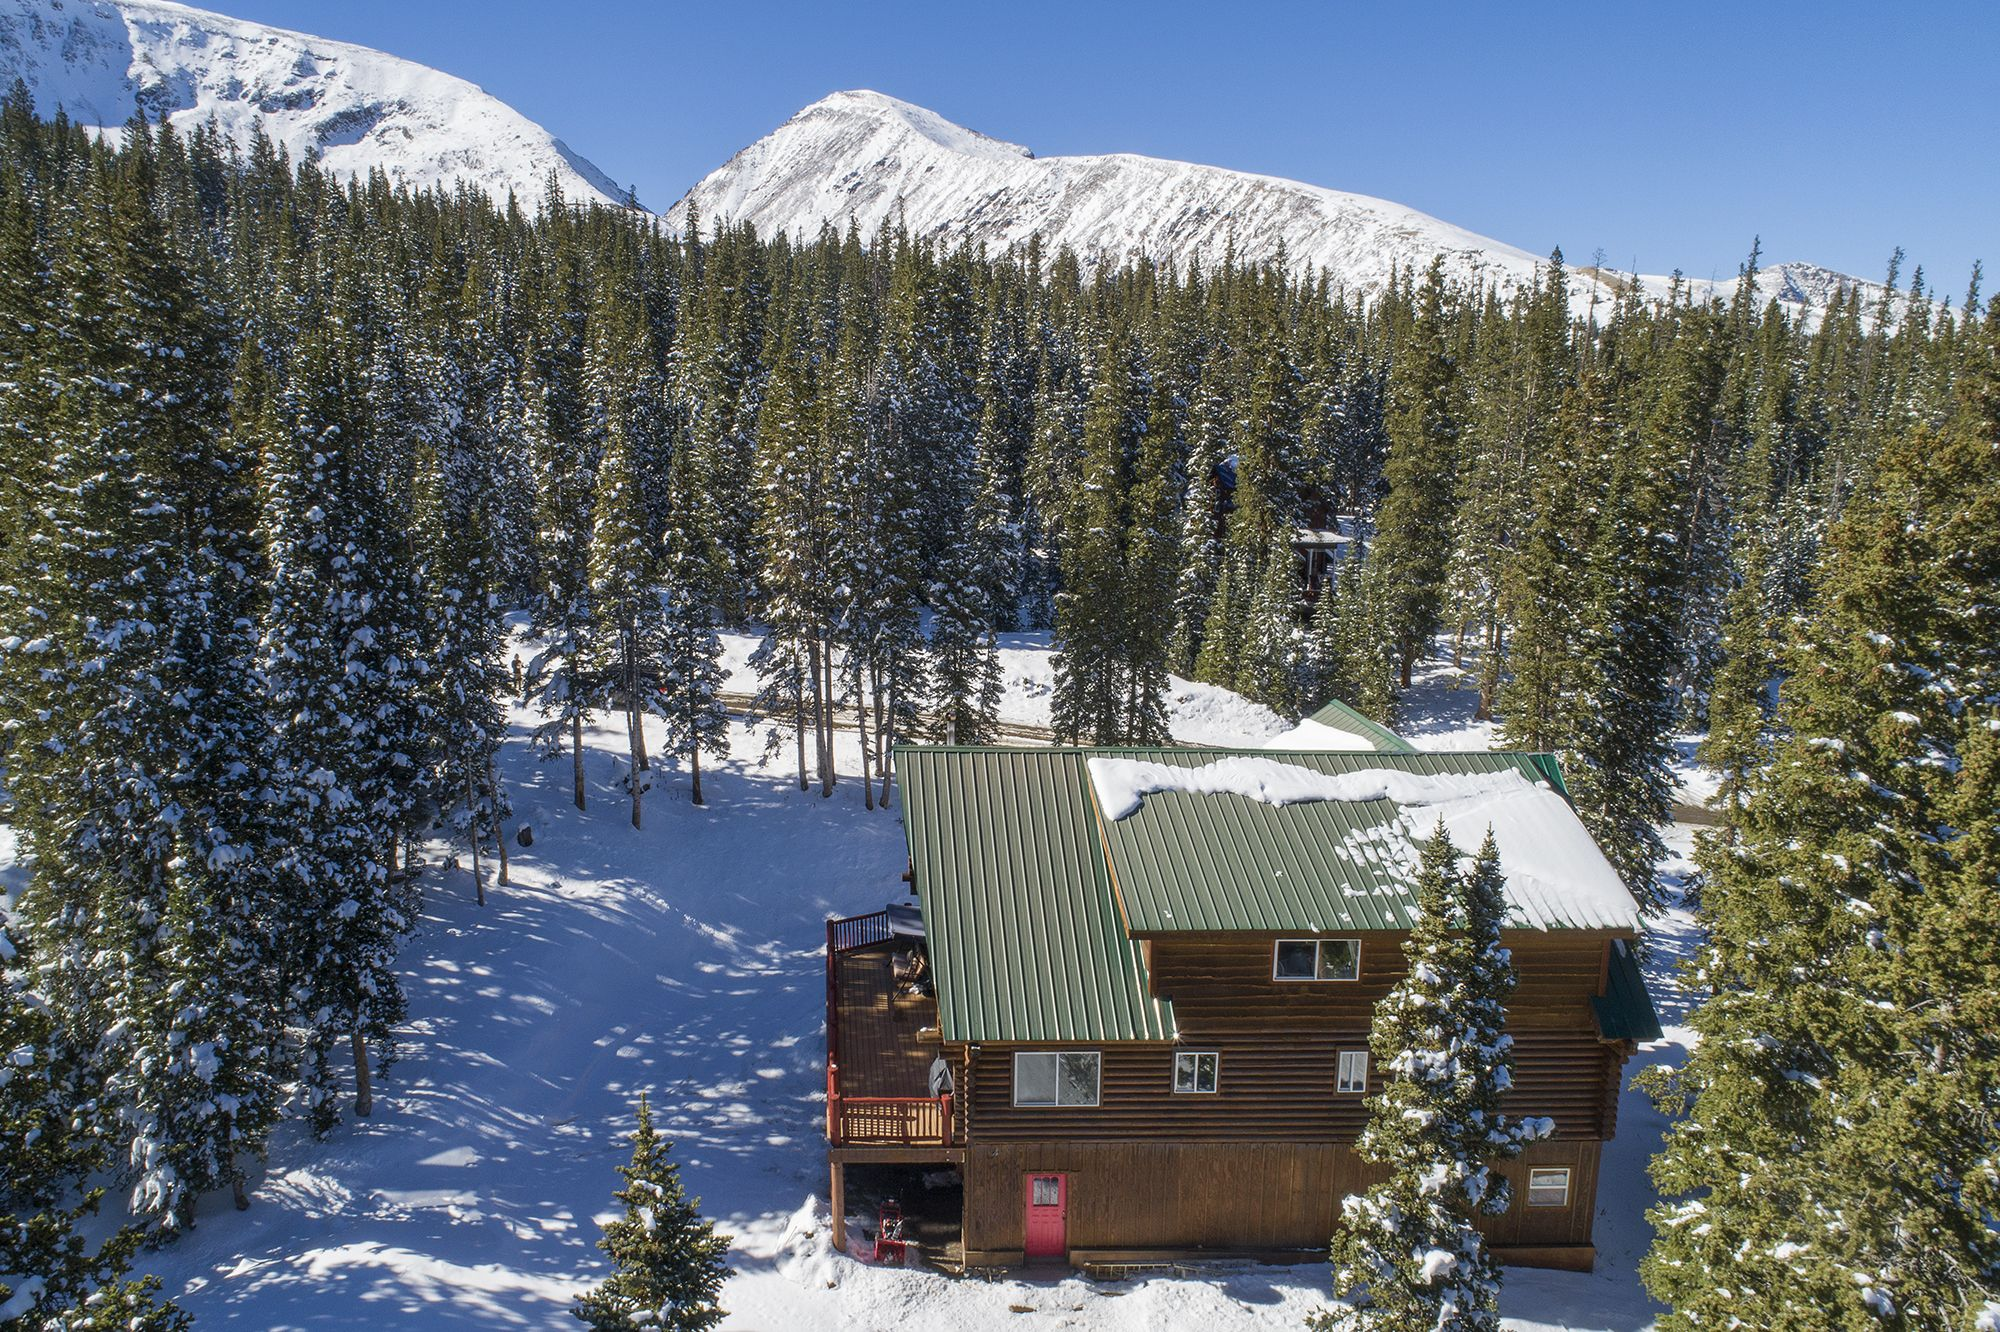 186 Robertson LANE BRECKENRIDGE, Colorado 80424